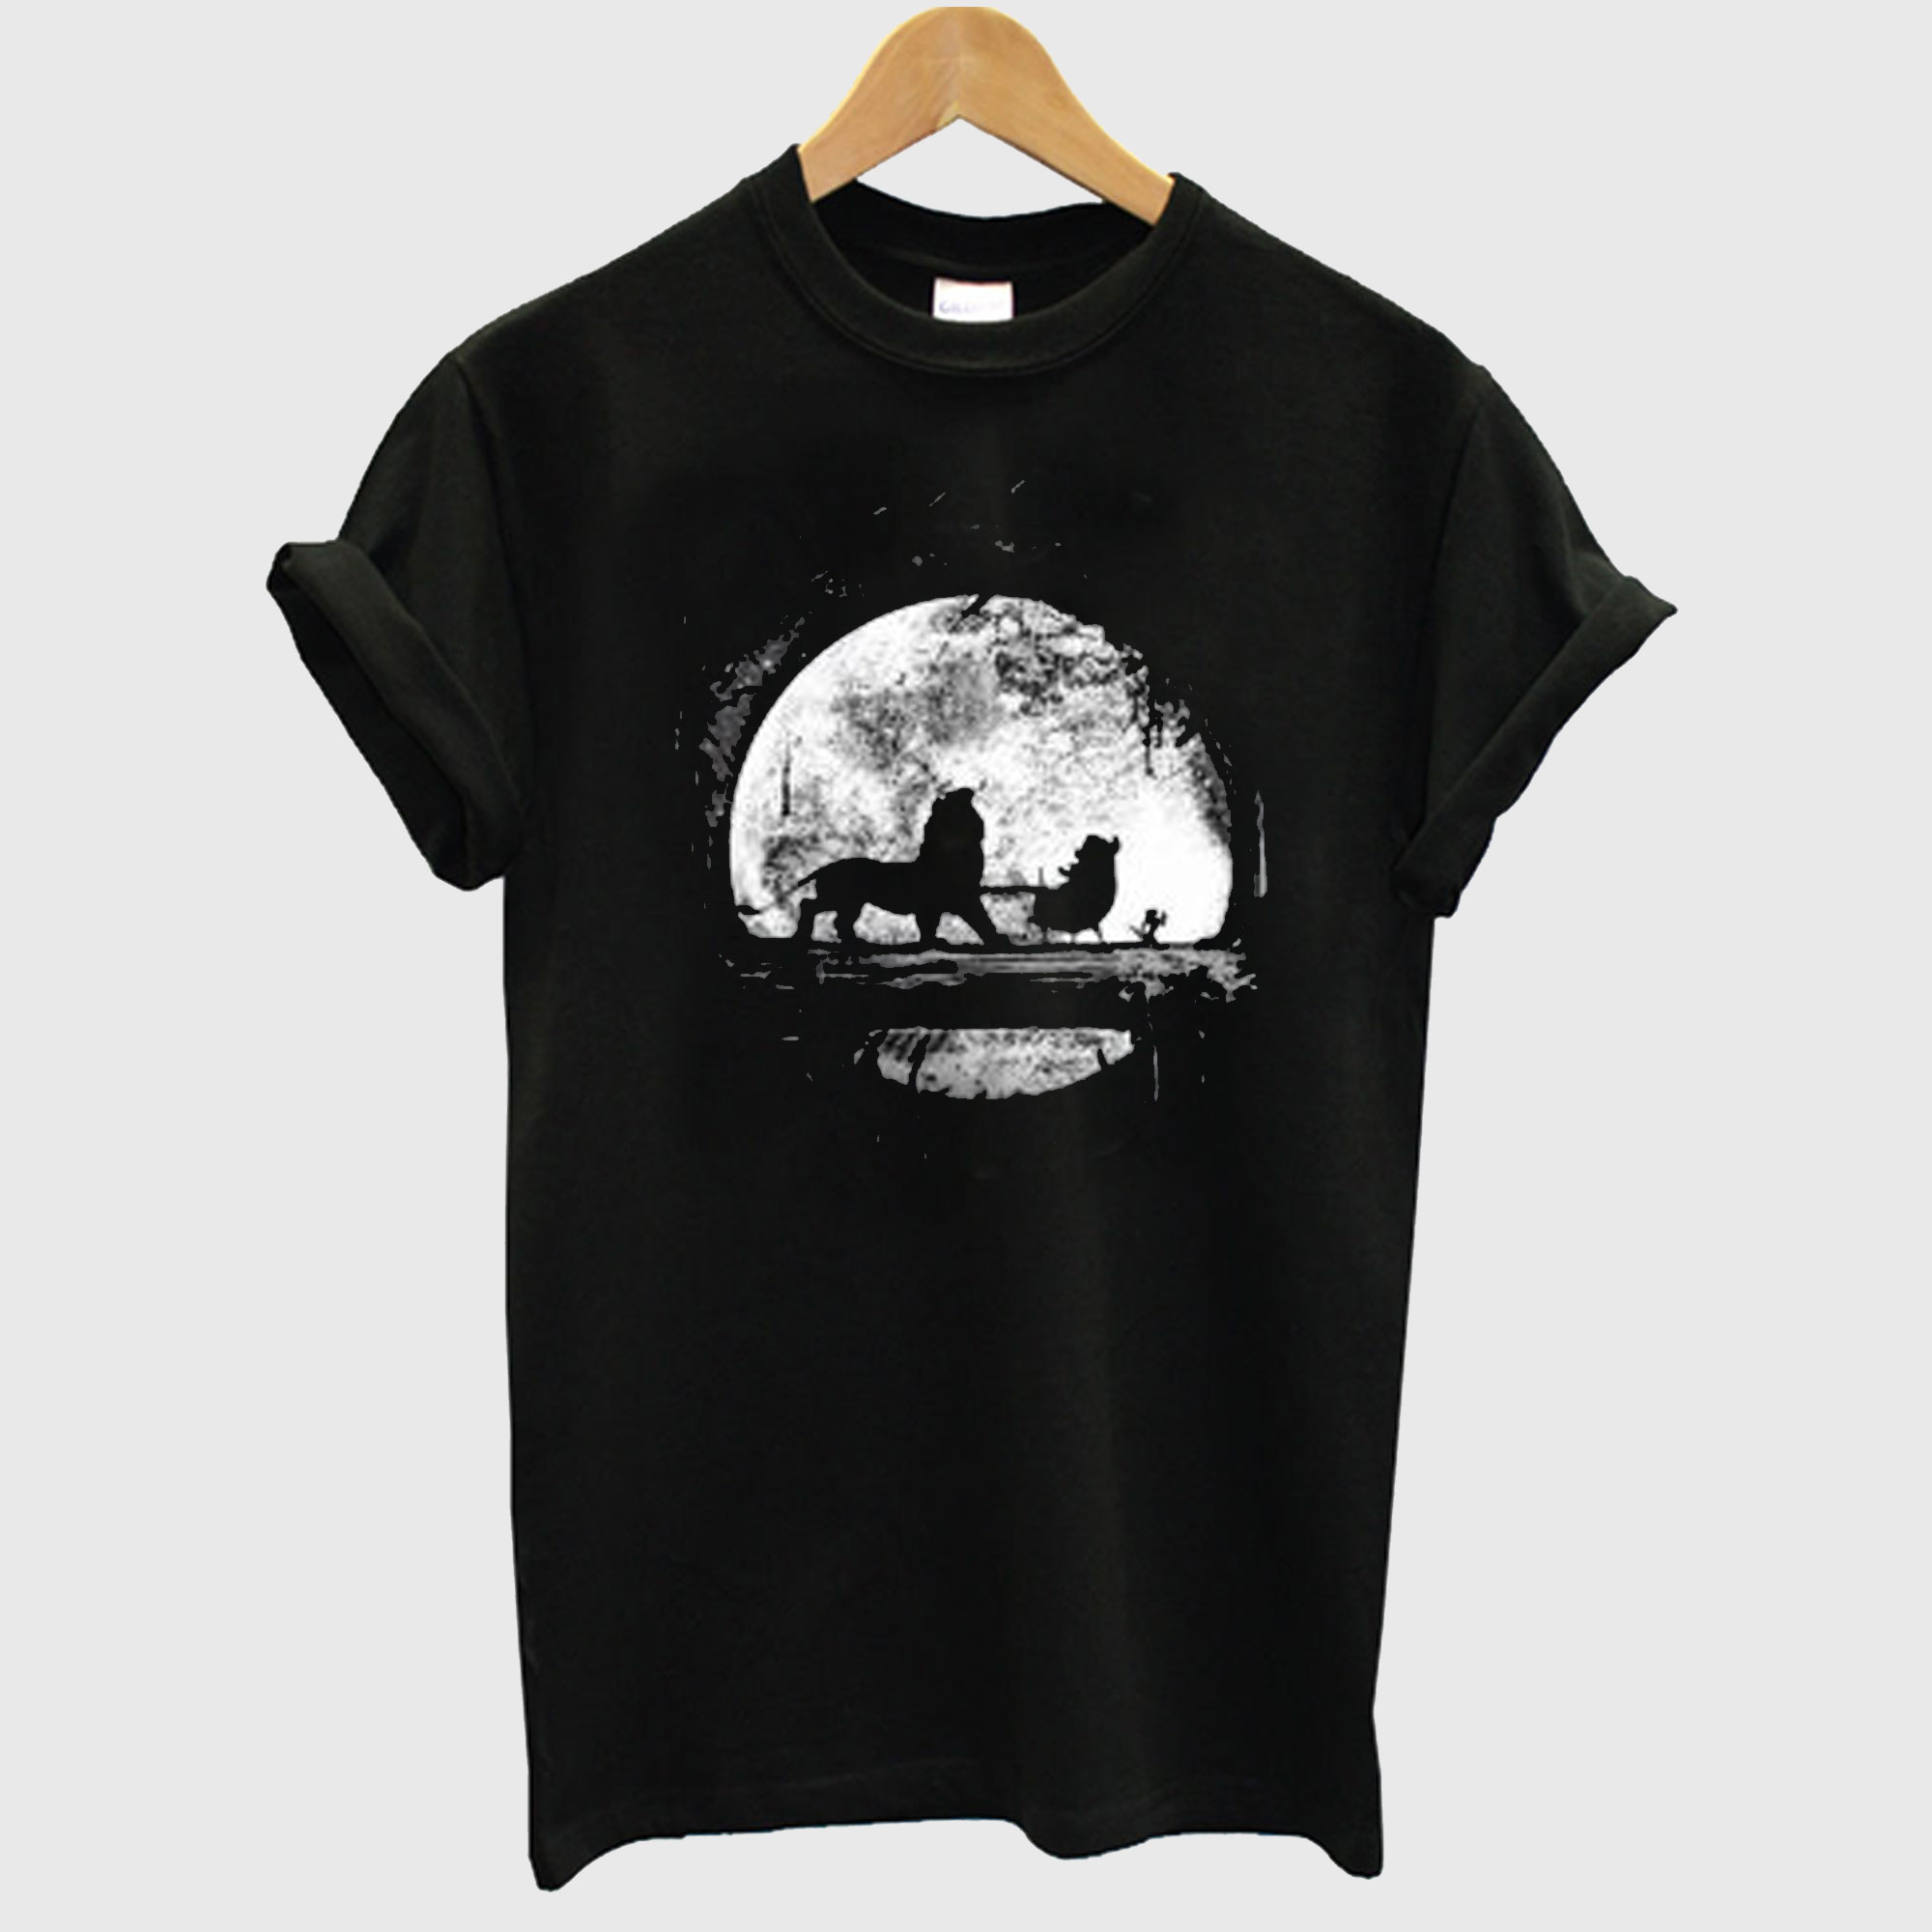 Moonlight Black T Shirt